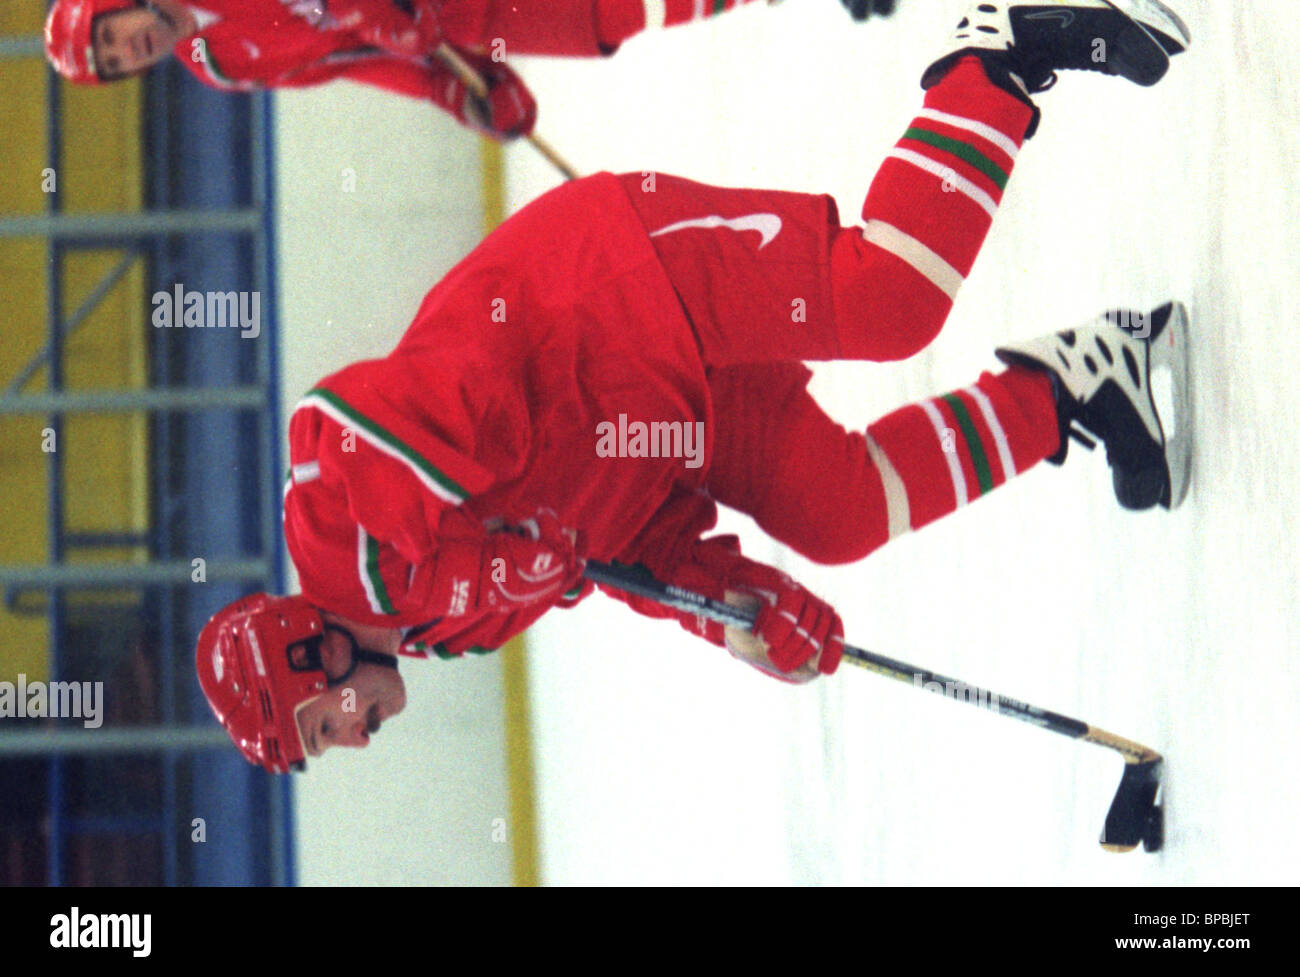 Byelorussian President Alexander Lukashenko /ops/ as a leader of Byelorussian team took part in ice-hockey unofficial - Stock Image